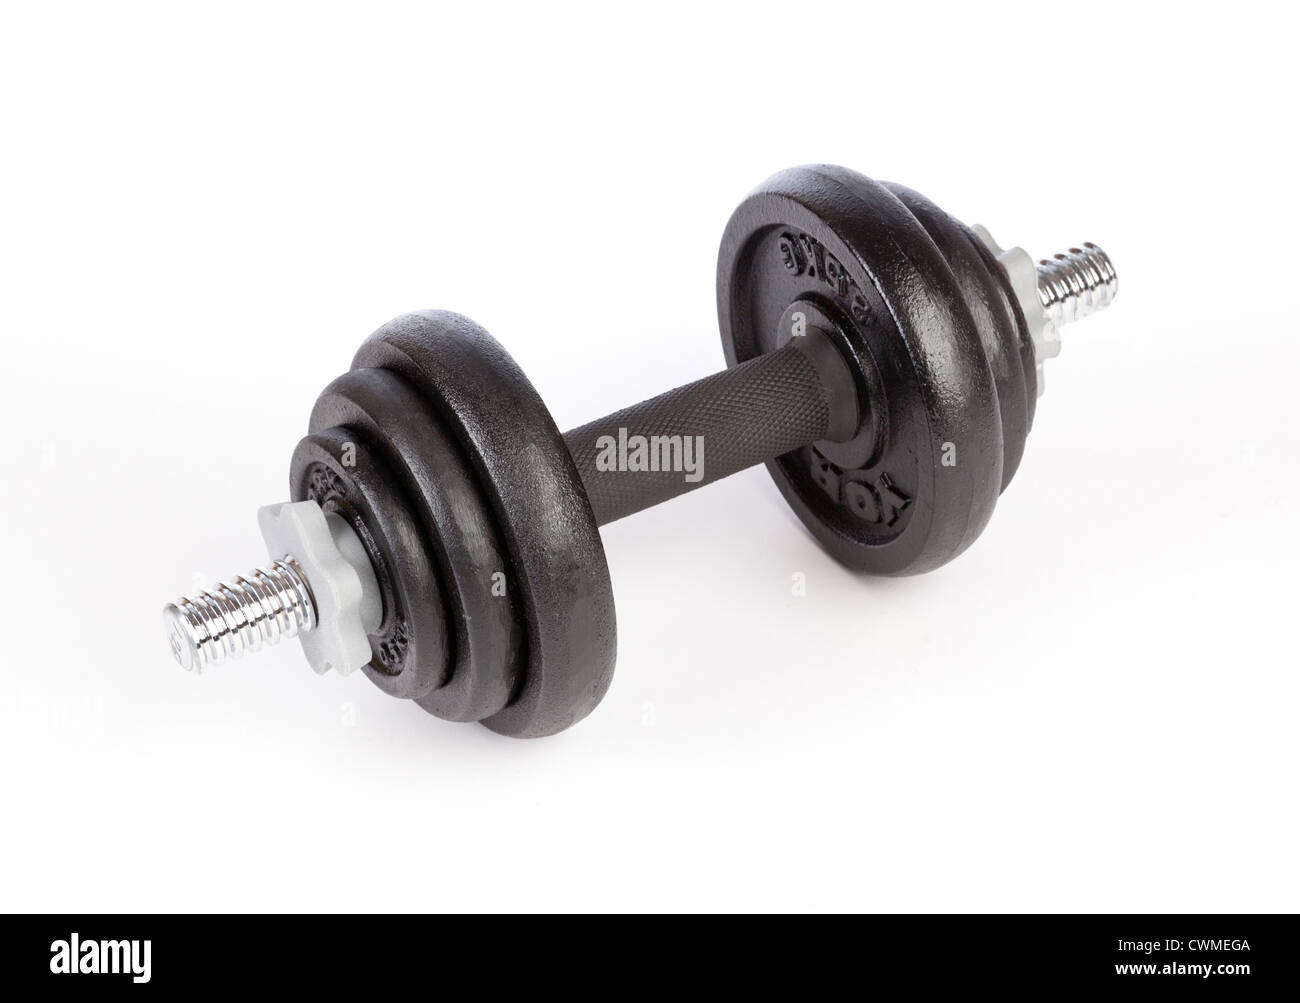 dumbbell weights made of cast iron - Stock Image